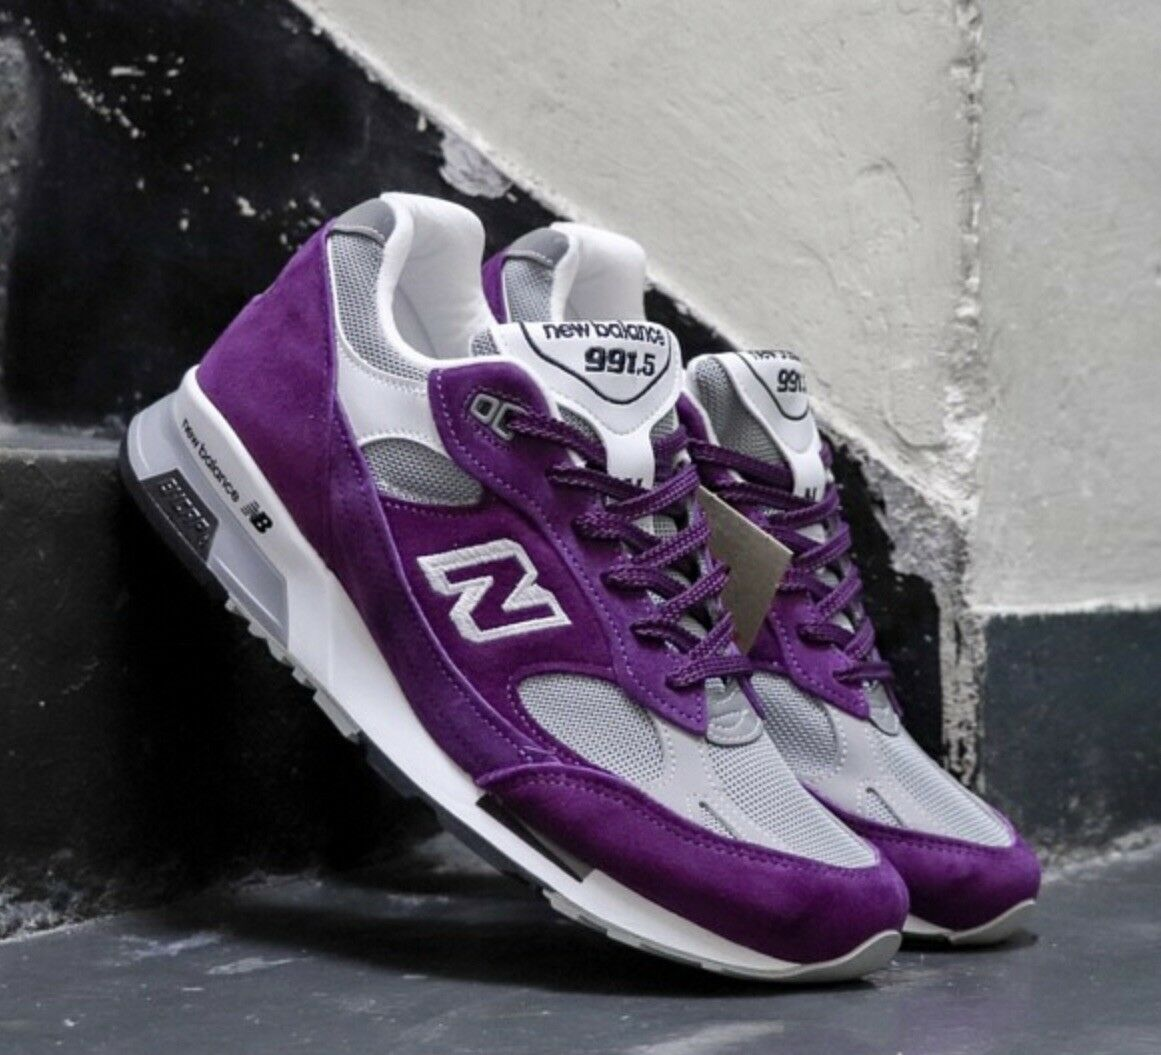 DS NIB MENS NEW BALANCE 991.5 M991.5CC MADE IN ENGLAND SZ 12 PURPLE WHITE FREE